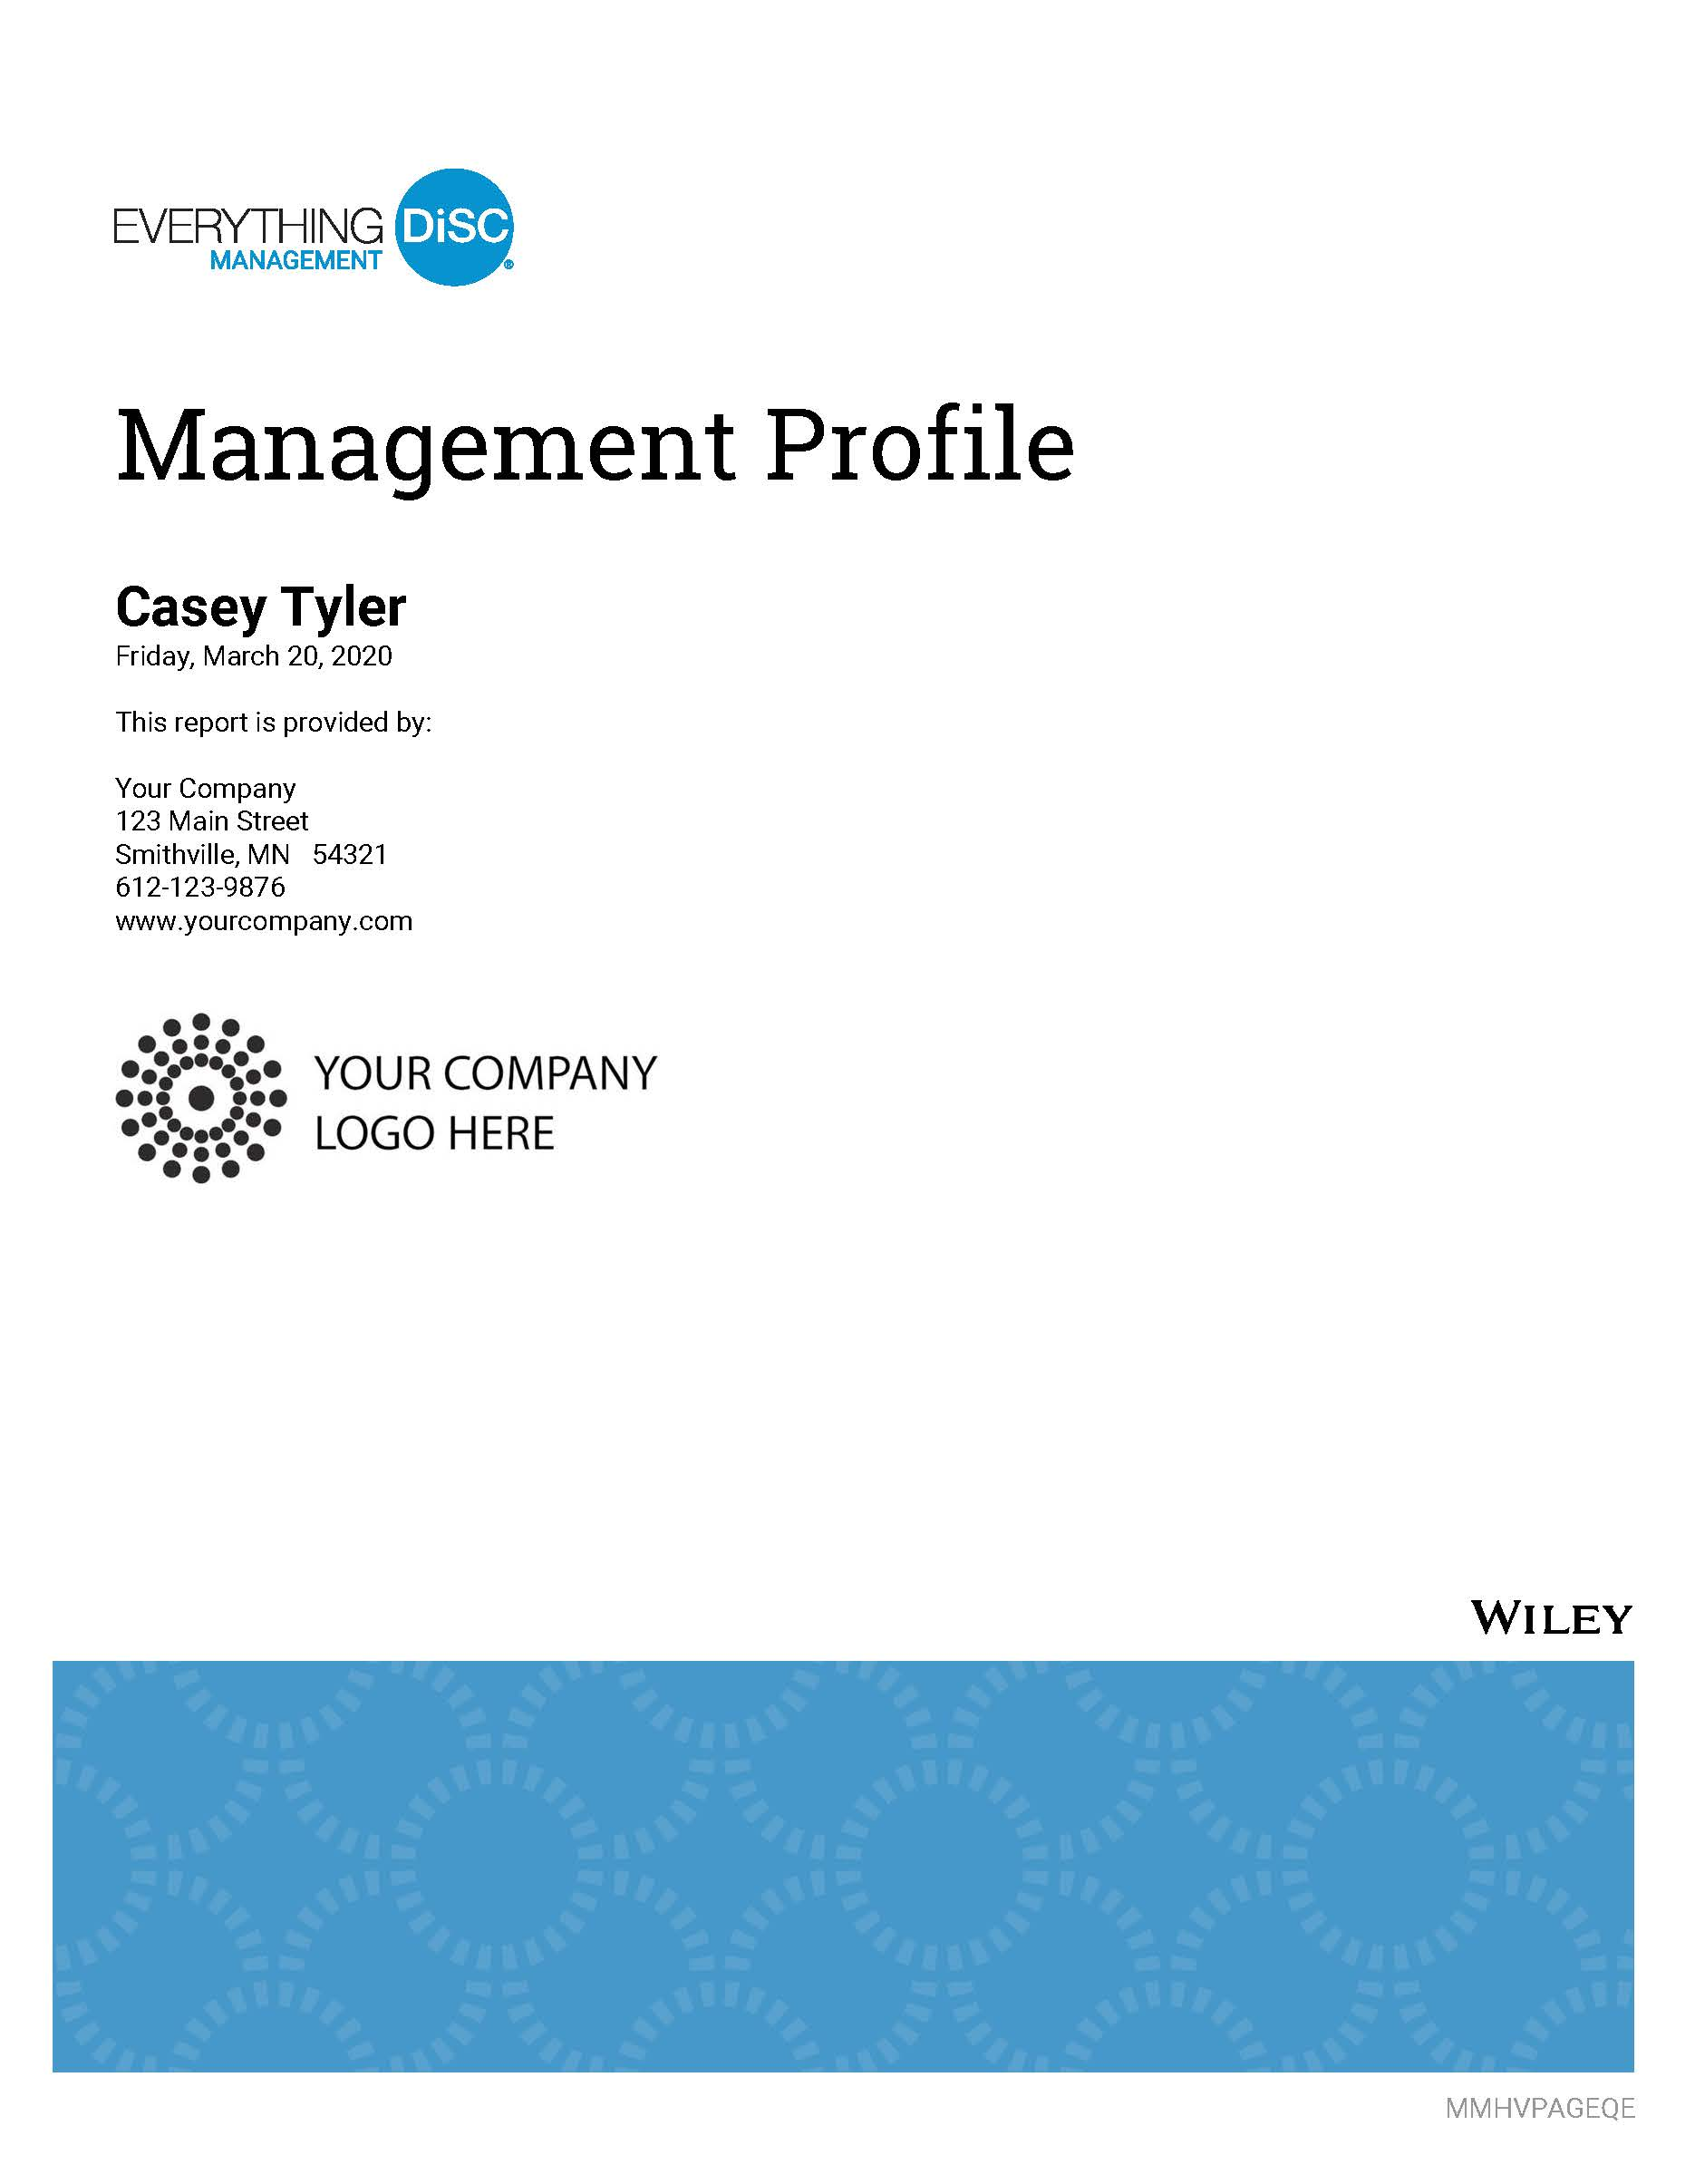 Everything DiSC Management Profile Cover Image 2020